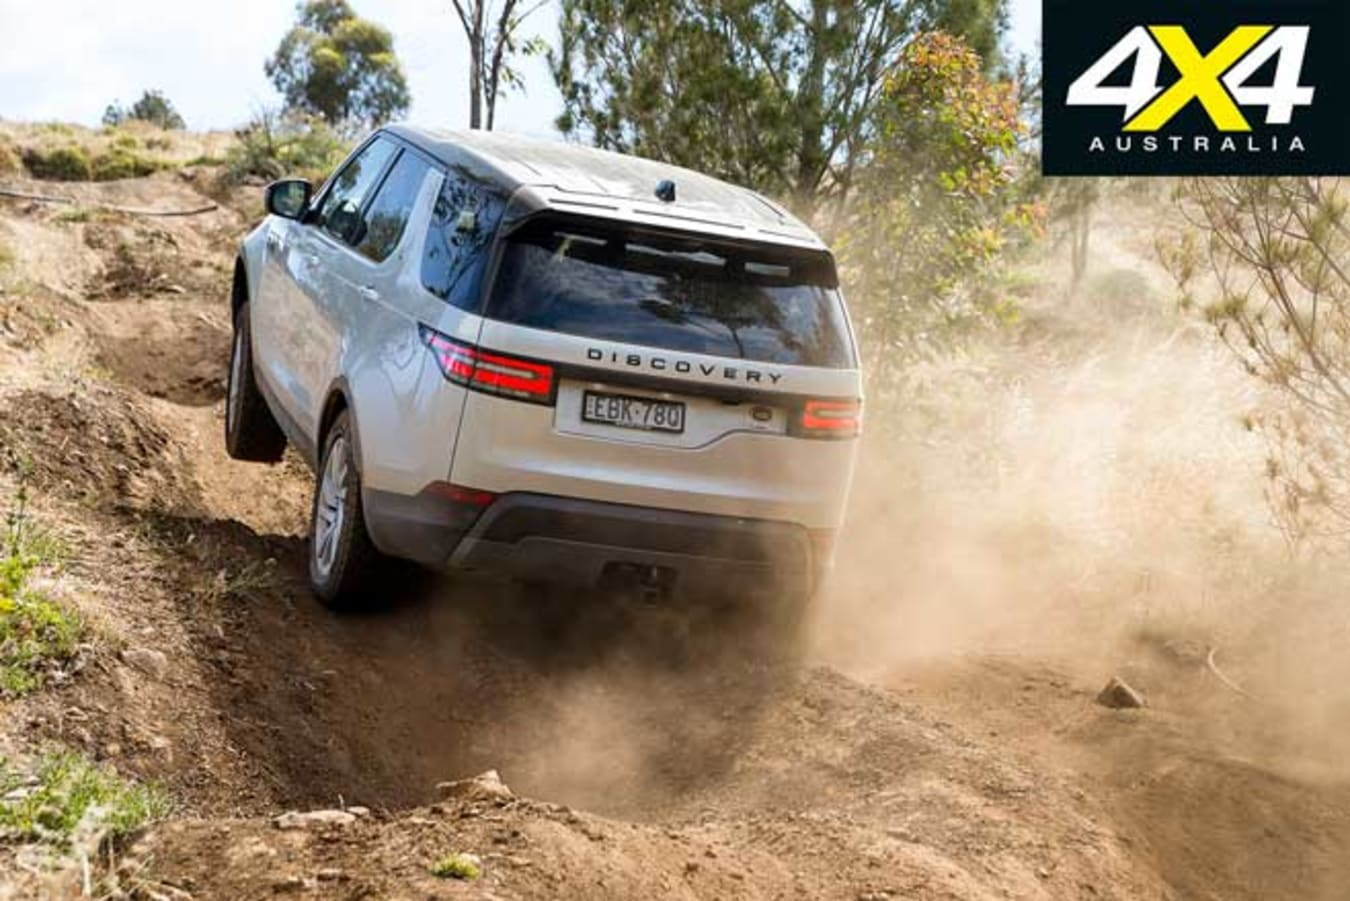 2020 4 X 4 Of The Year Land Rover Discovery Sd 6 Hillclimb Jpg